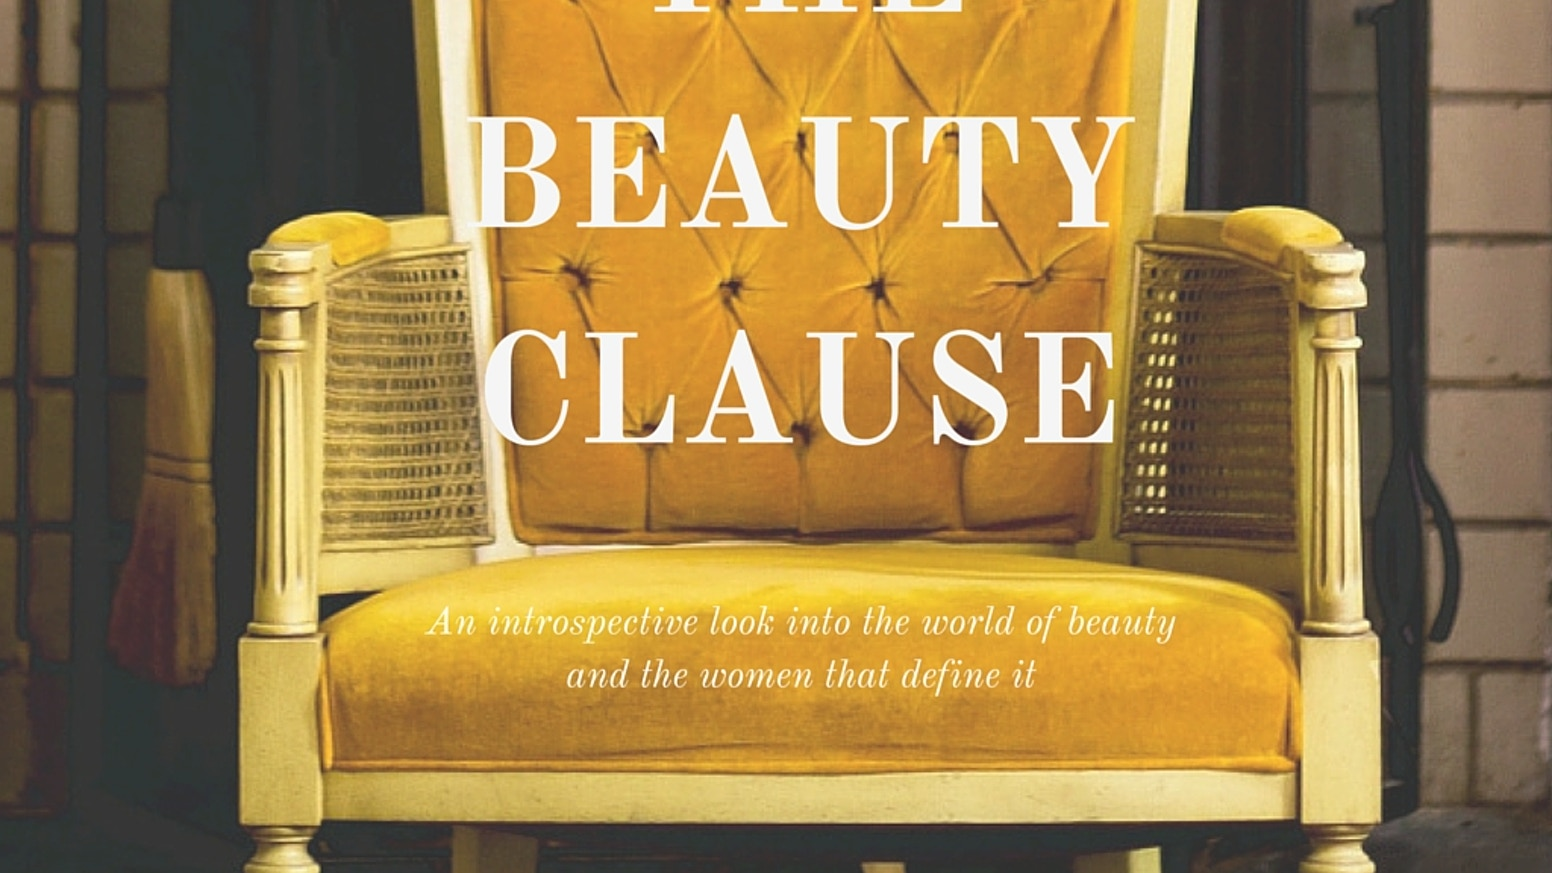 The Beauty Clause is a book project dedicated to discovering, understanding, and celebrating beauty in cultures around the world.